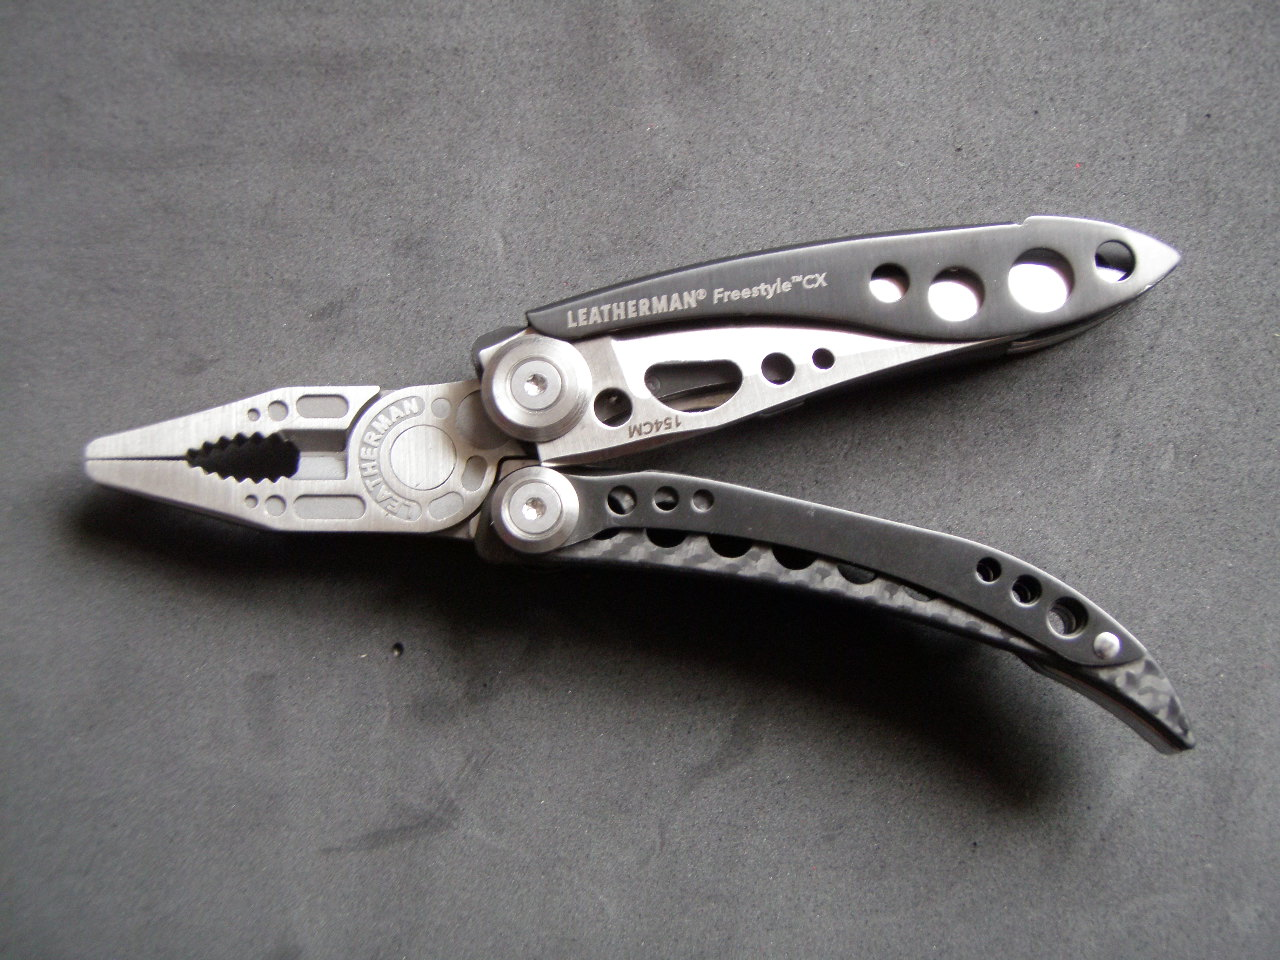 Leatherman Freestyle Cx Mtblog Org The Ramblings Of A